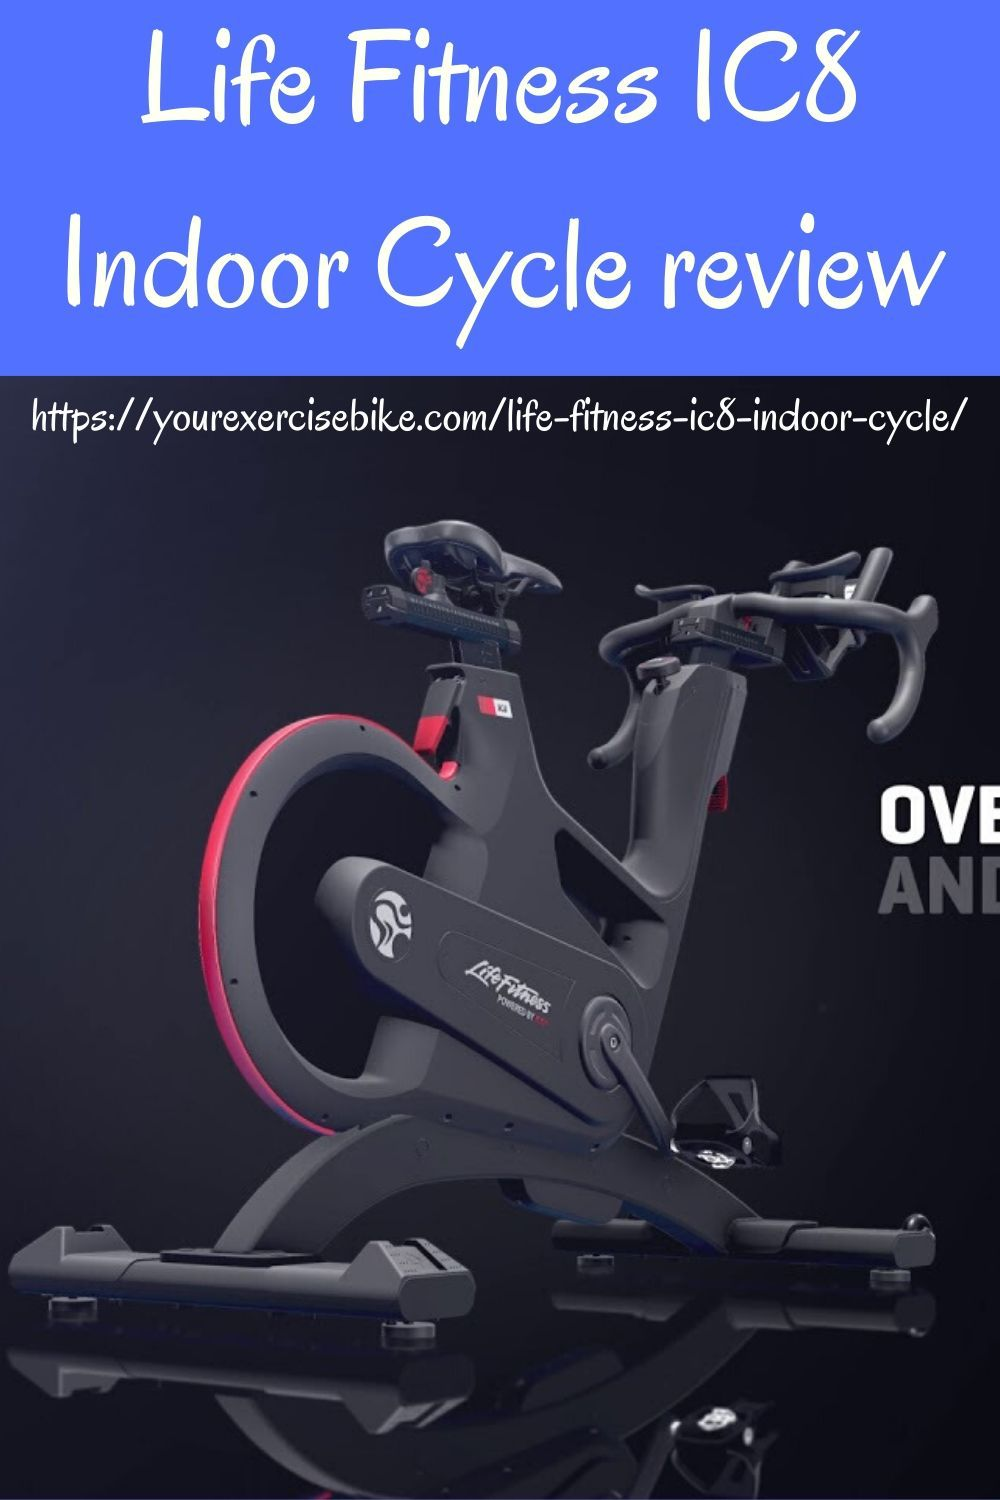 Life Fitness Ic8 Indoor Cycle Review Fit Life Indoor Cycling Indoor Cycling Bike